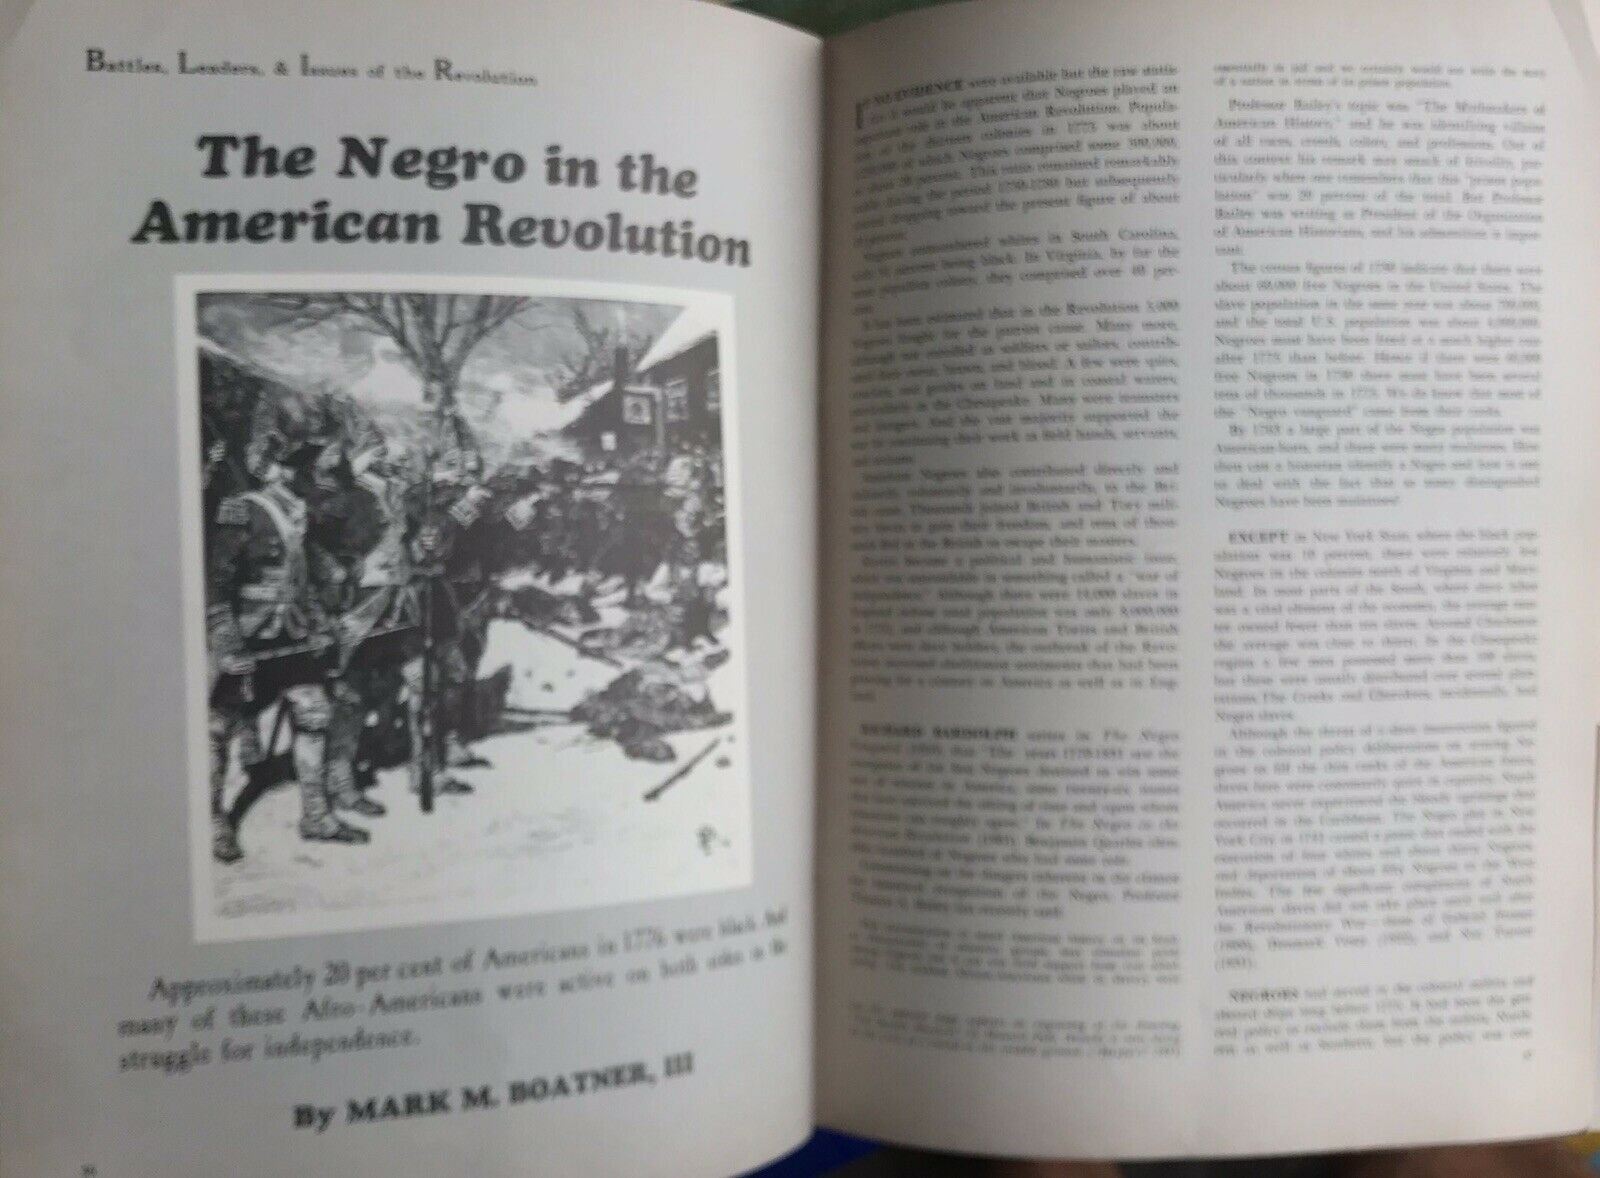 VINTAGE AMERICAN HISTORY ILLUSTRATED LOT OF 2 COWPENS NEGROES IN REVOLUTION |